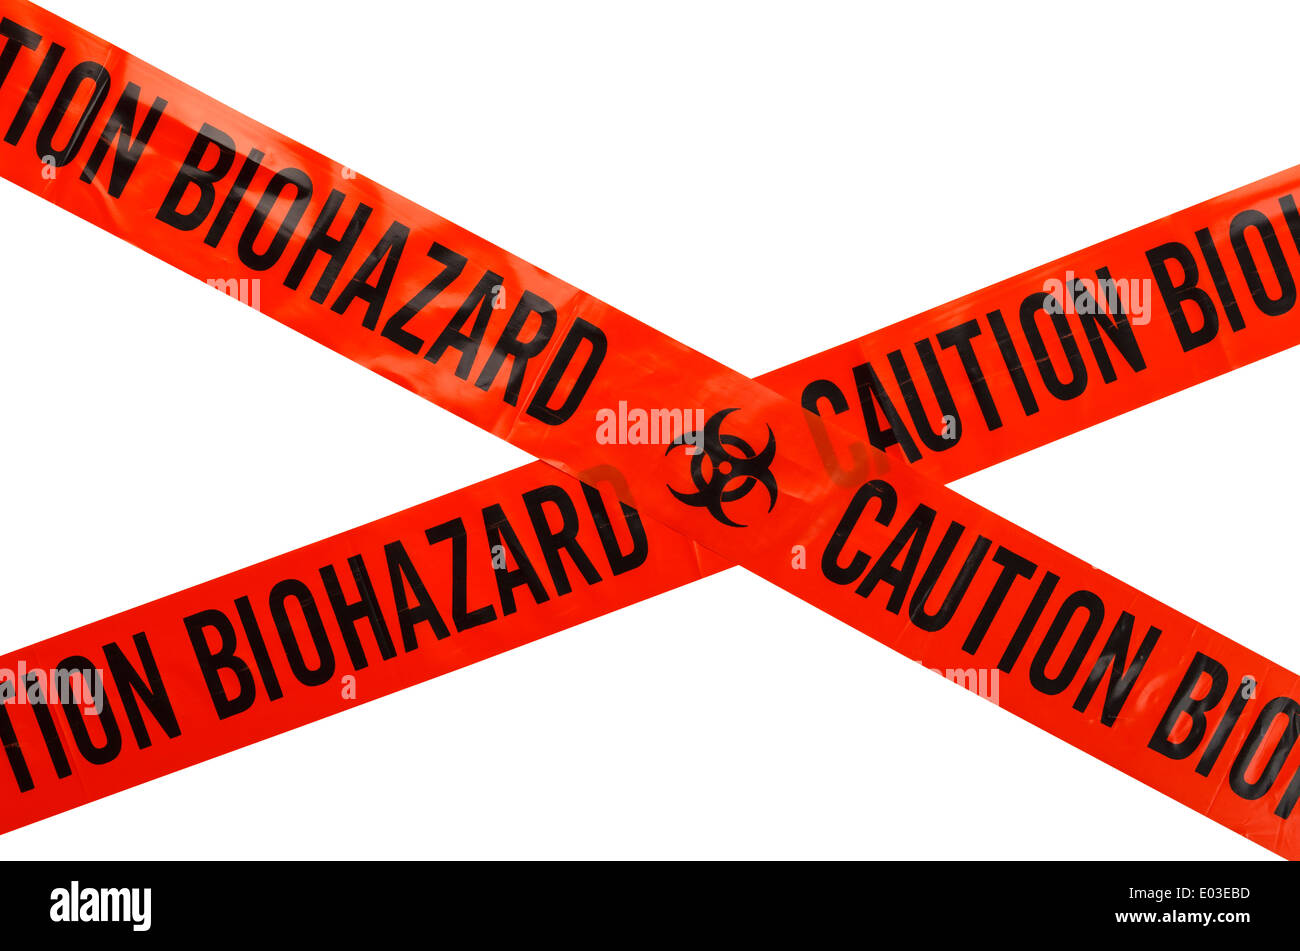 Orange and Black Caution Biohazard Tape. Isolated on White Background. - Stock Image